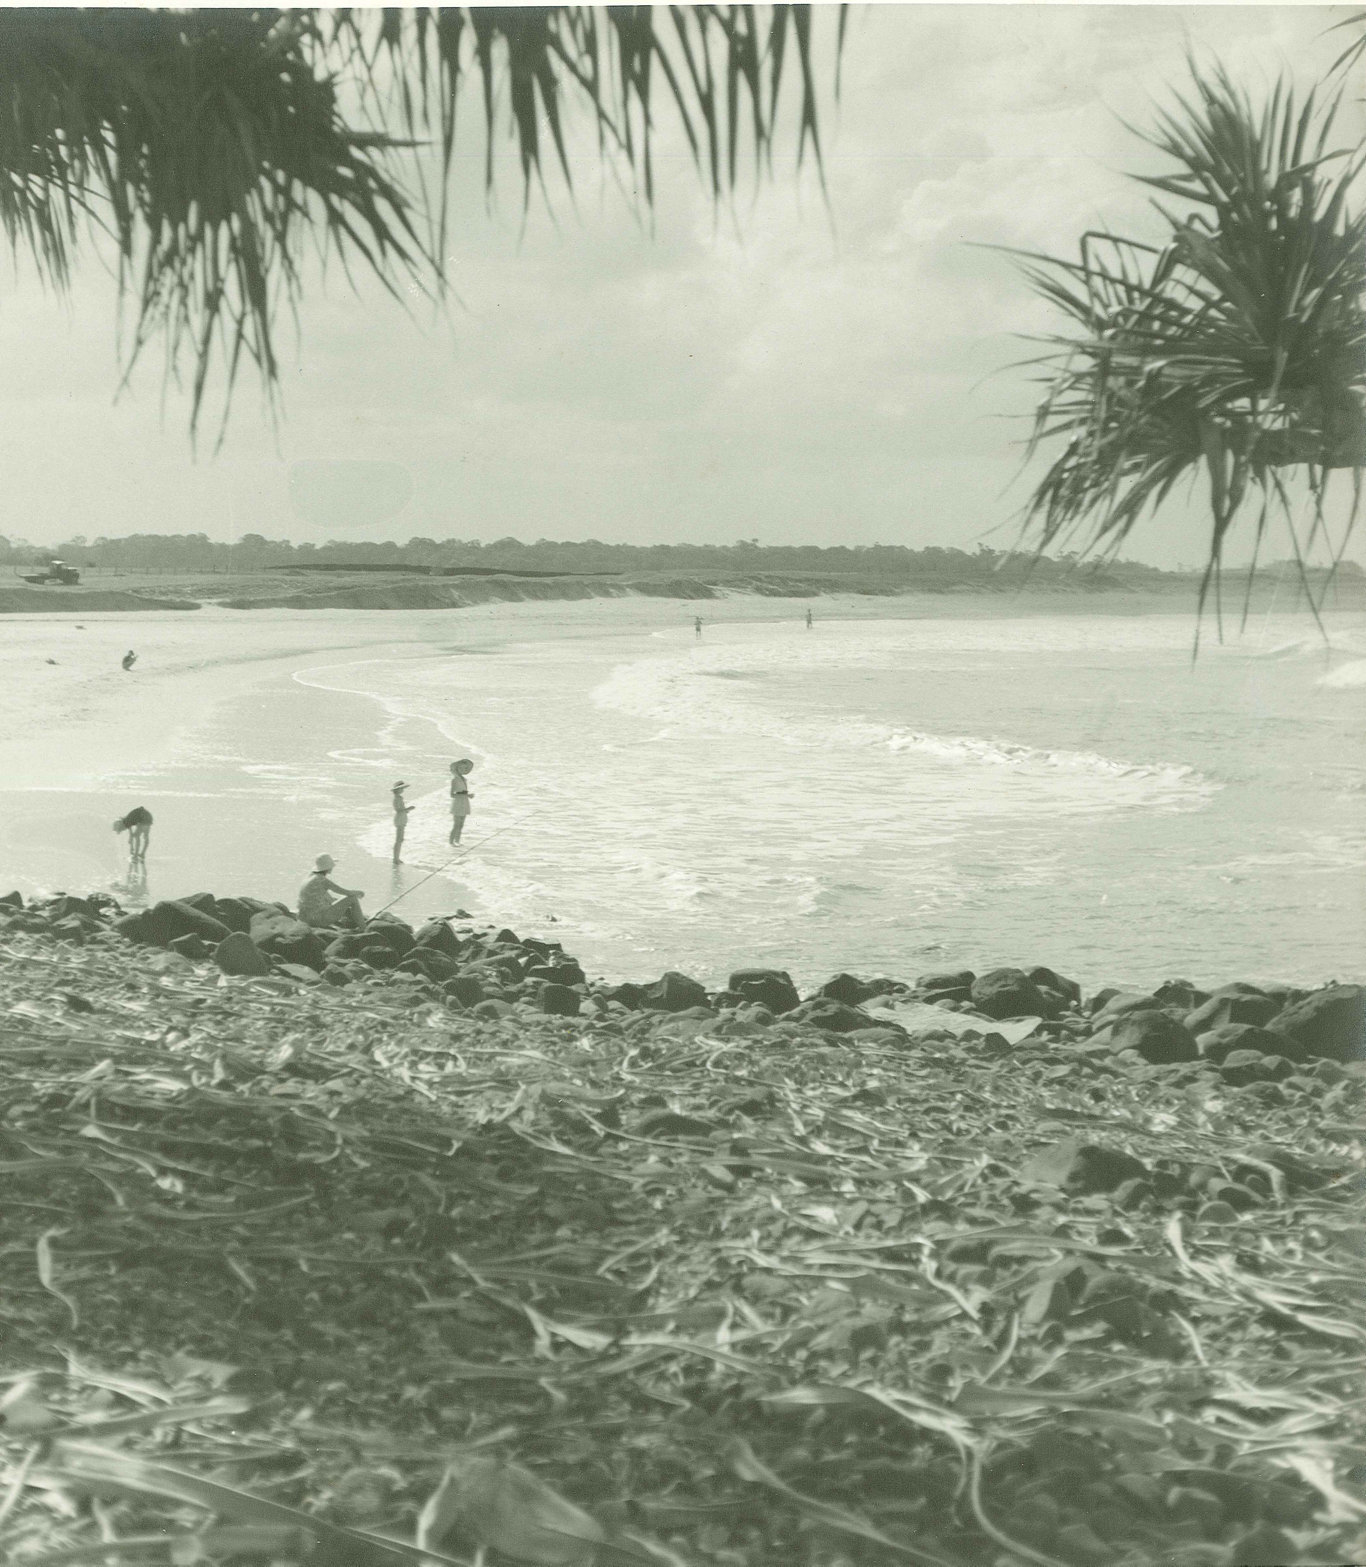 Beachgoers at Mon Repos during the 1950s. Note the broad-brimmed hats and elegant bathing costumes.